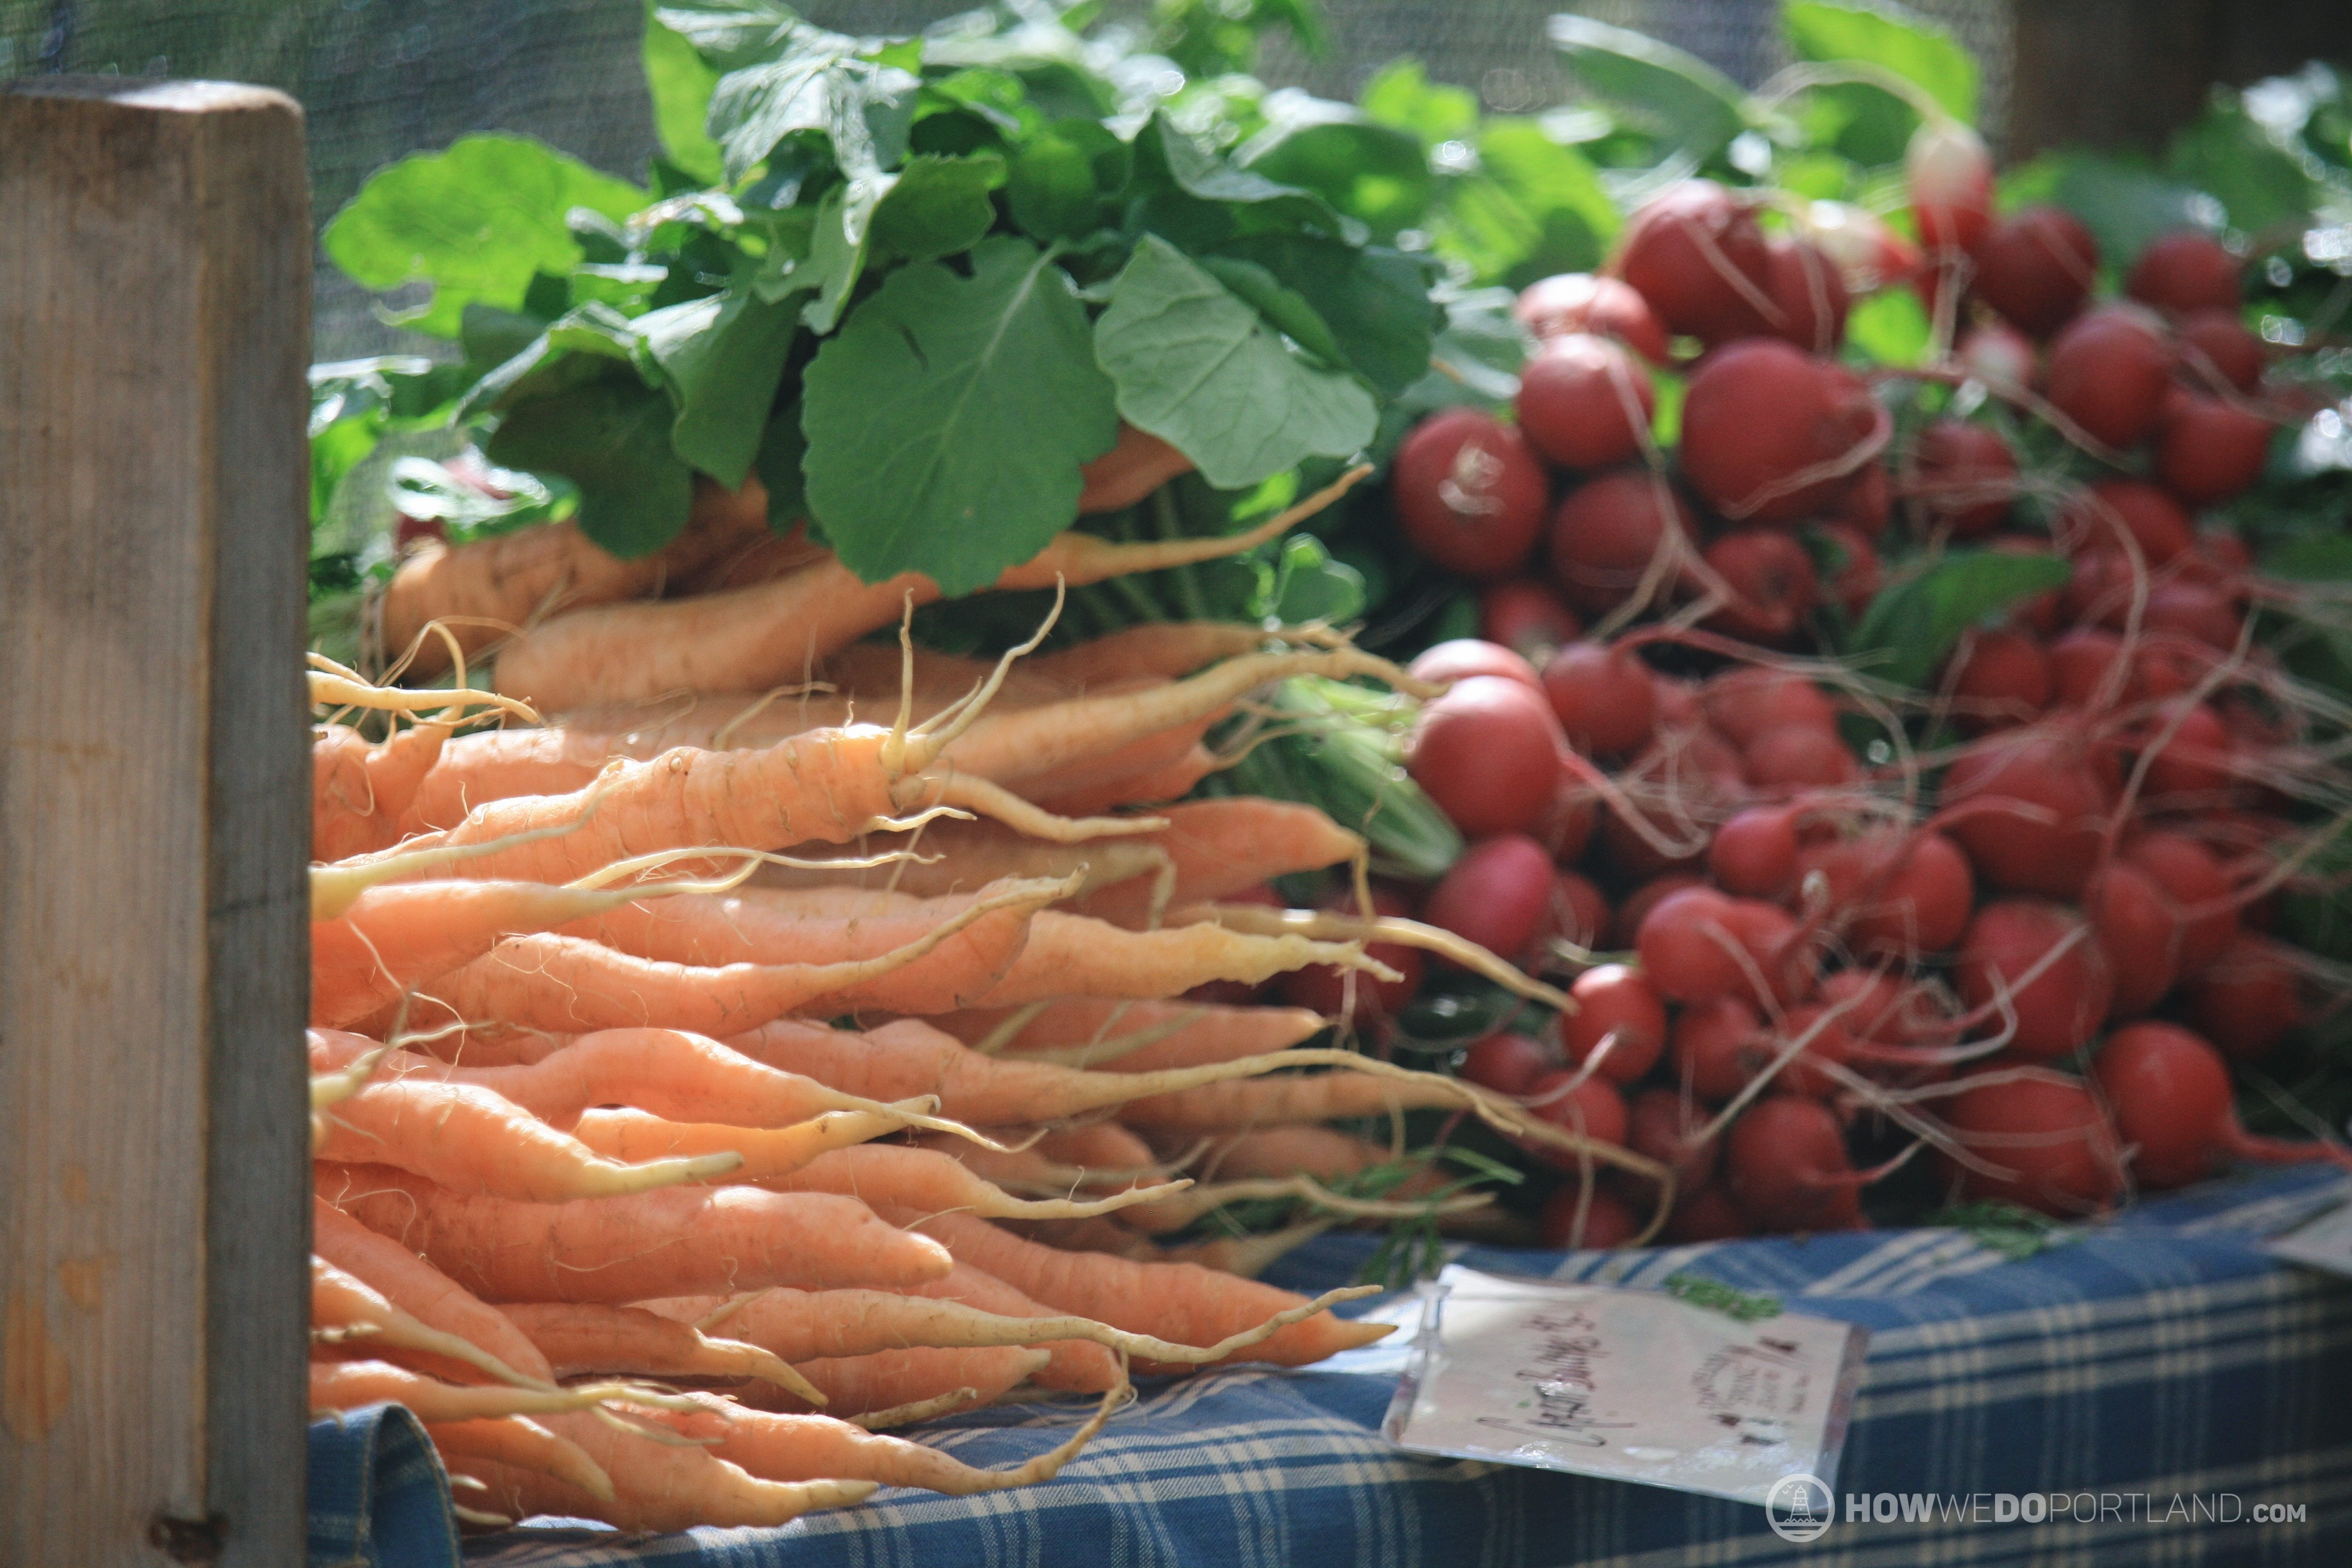 Carrots & Radishes from Dandelion Spring Farm